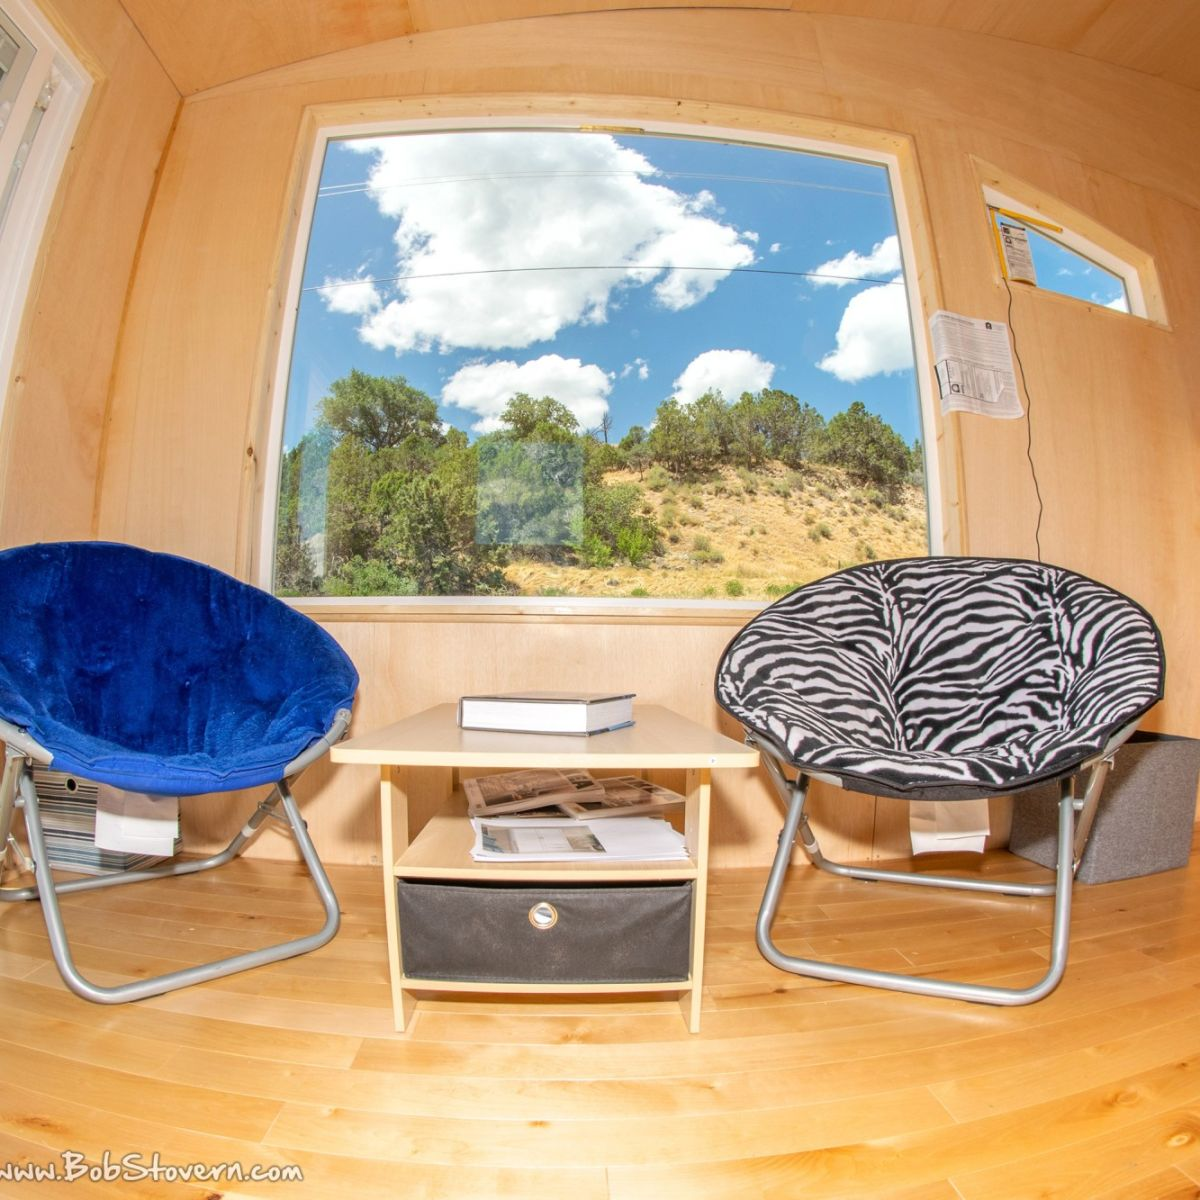 160 Sqft Tiny House Guest House Birch Wood Interior 4 Mile